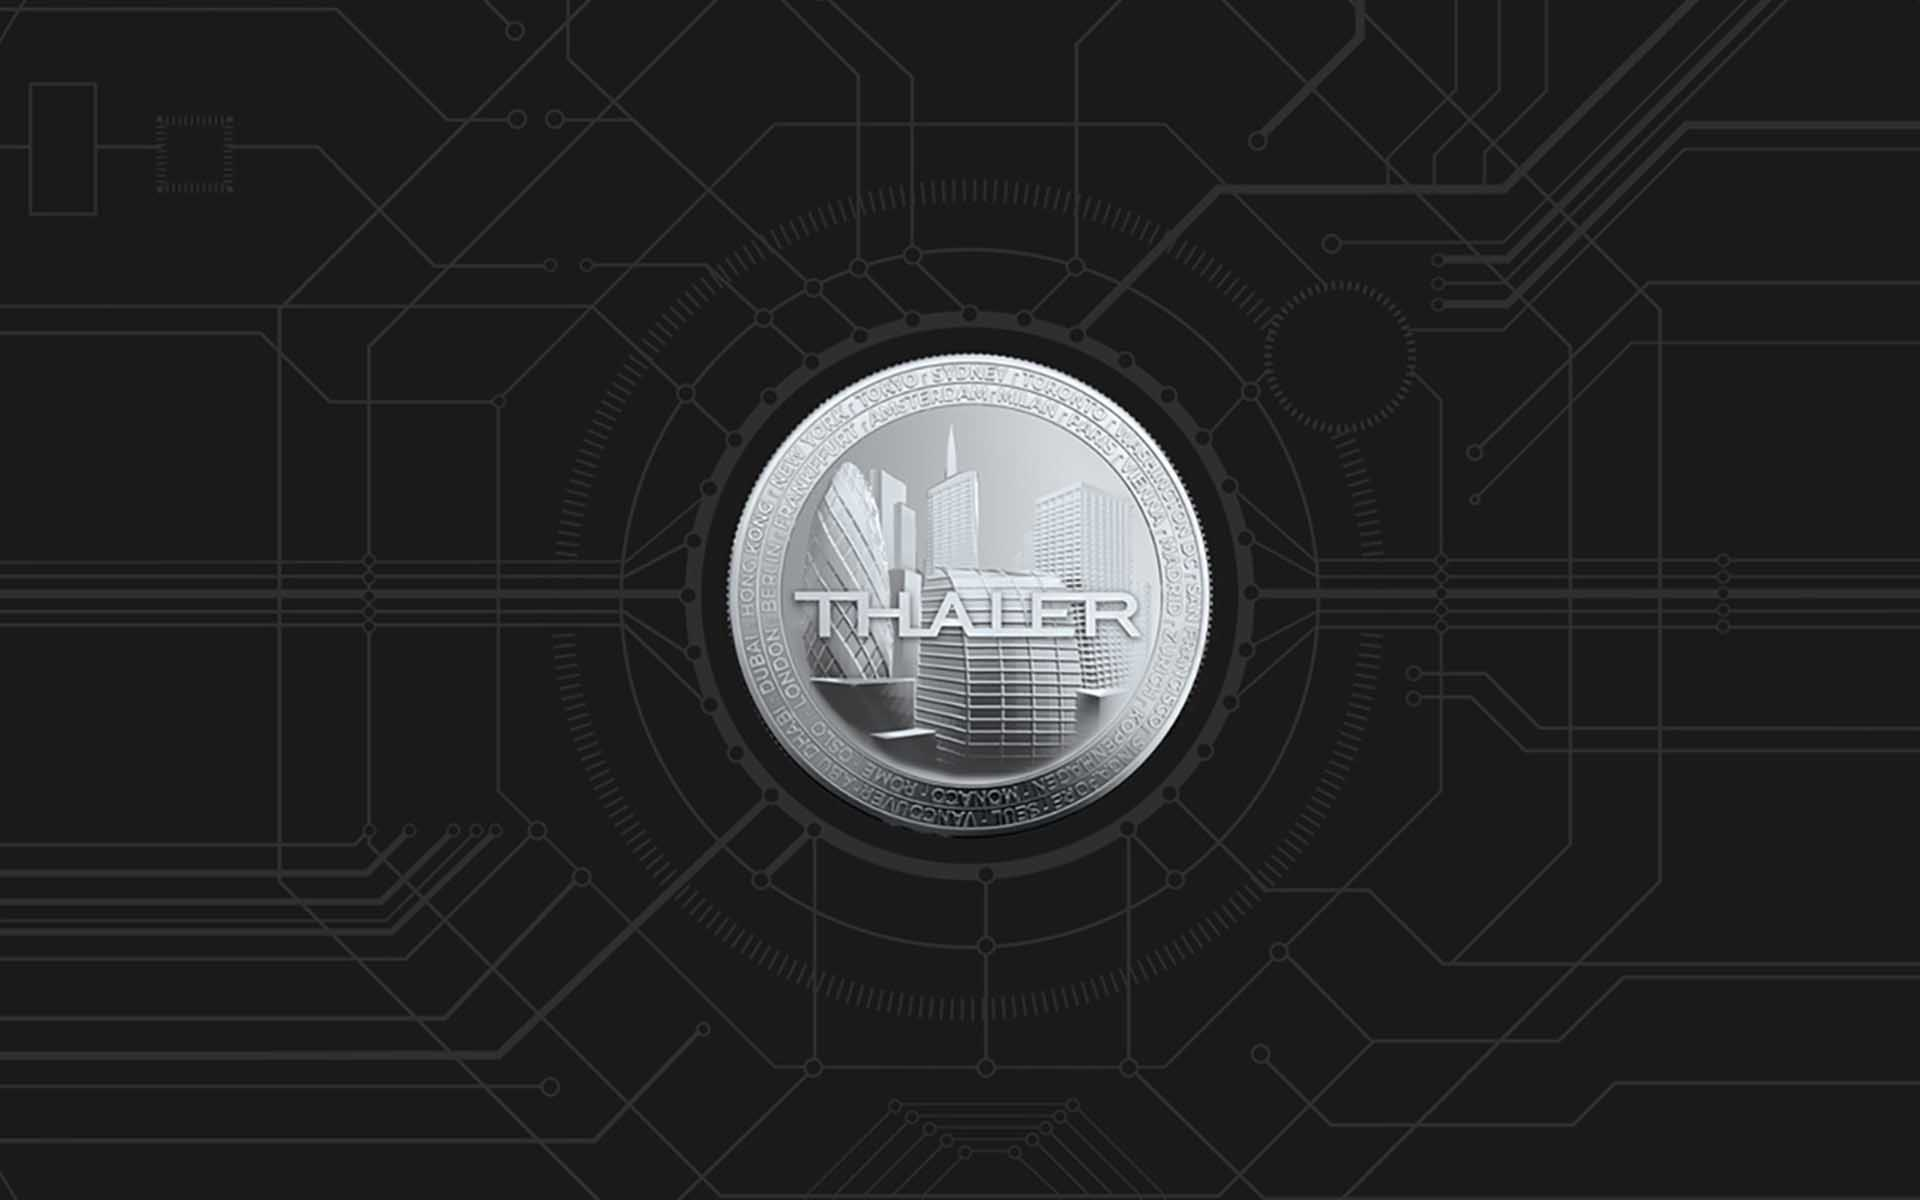 Thaler.One Brings Blockchain Benefits to Transform Real Estate Investing Zurich Based Thaler.One to Issue Security Tokens